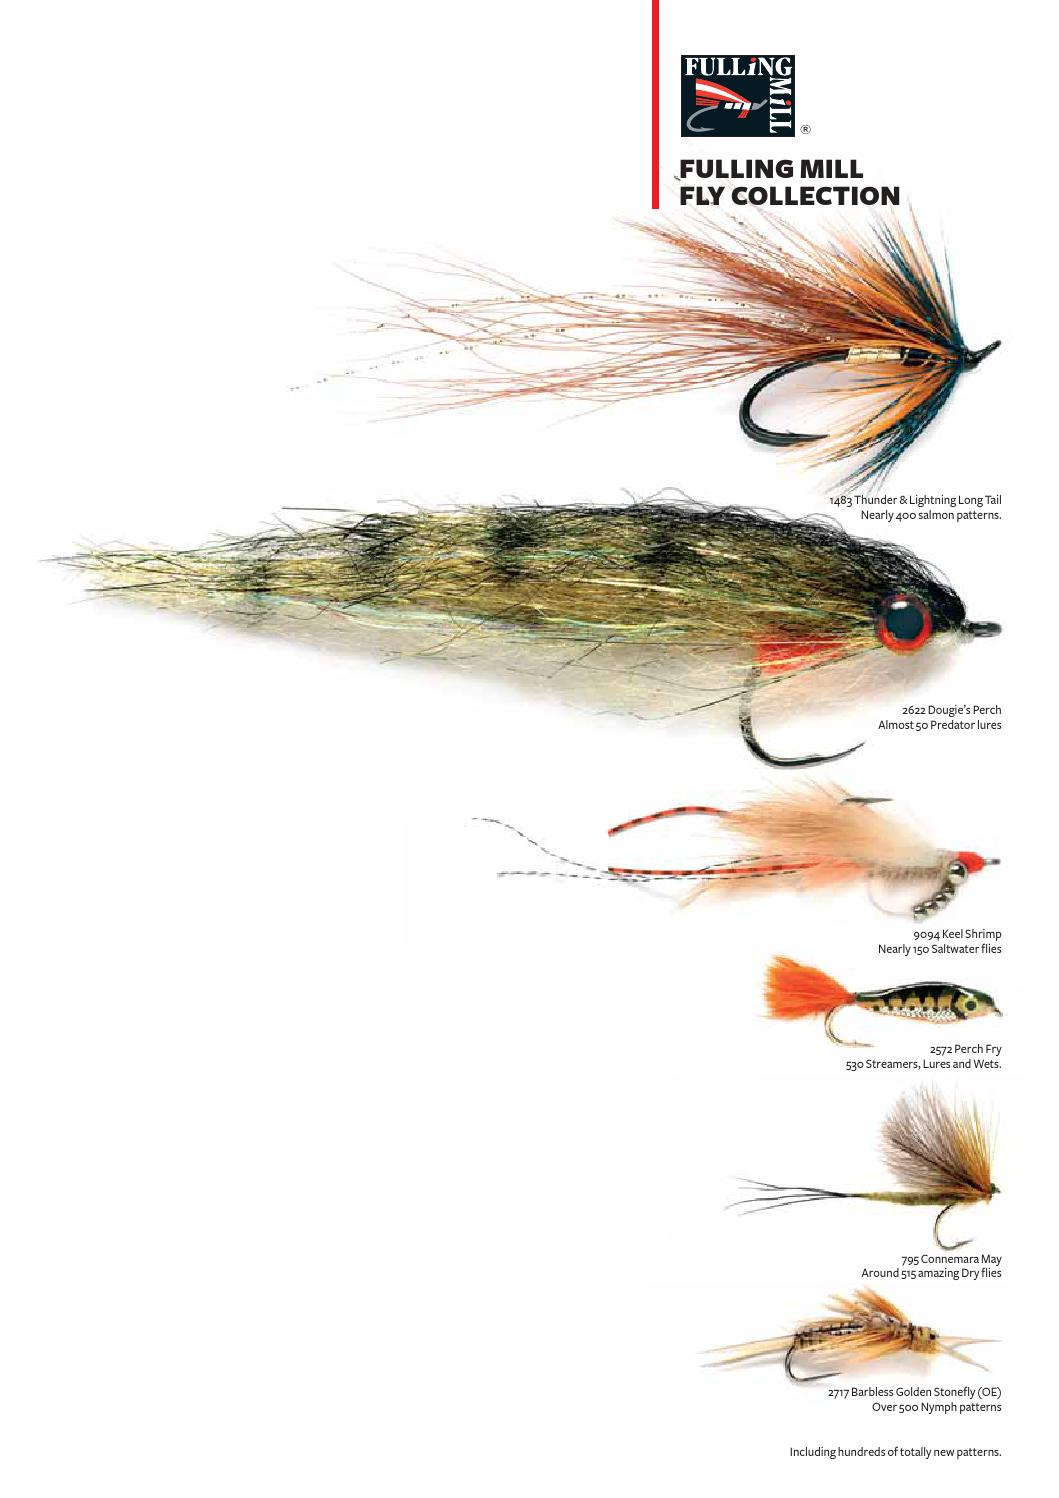 3x 6x or 12x Black Straggler Dabbler Wet Trout Flies for Fly Fishing